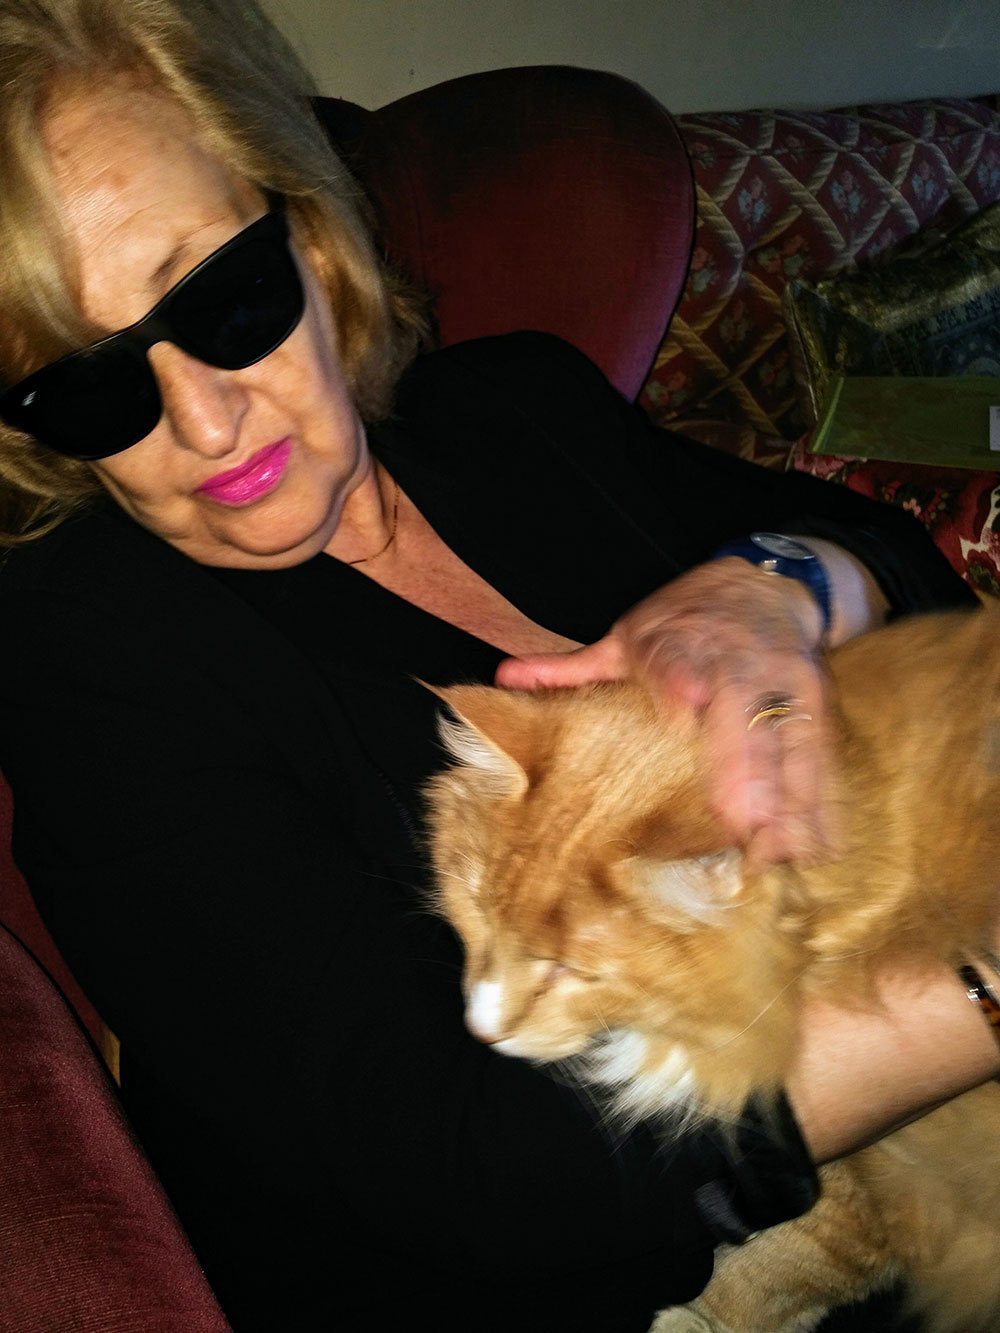 "When we delivered Simba, his grandma was worried he might be too heavy to cuddle. ""He's so big!"" she exclaimed, as the last time she'd seen him, he was just a kitten. Looks like that cuddle happened anyway!"